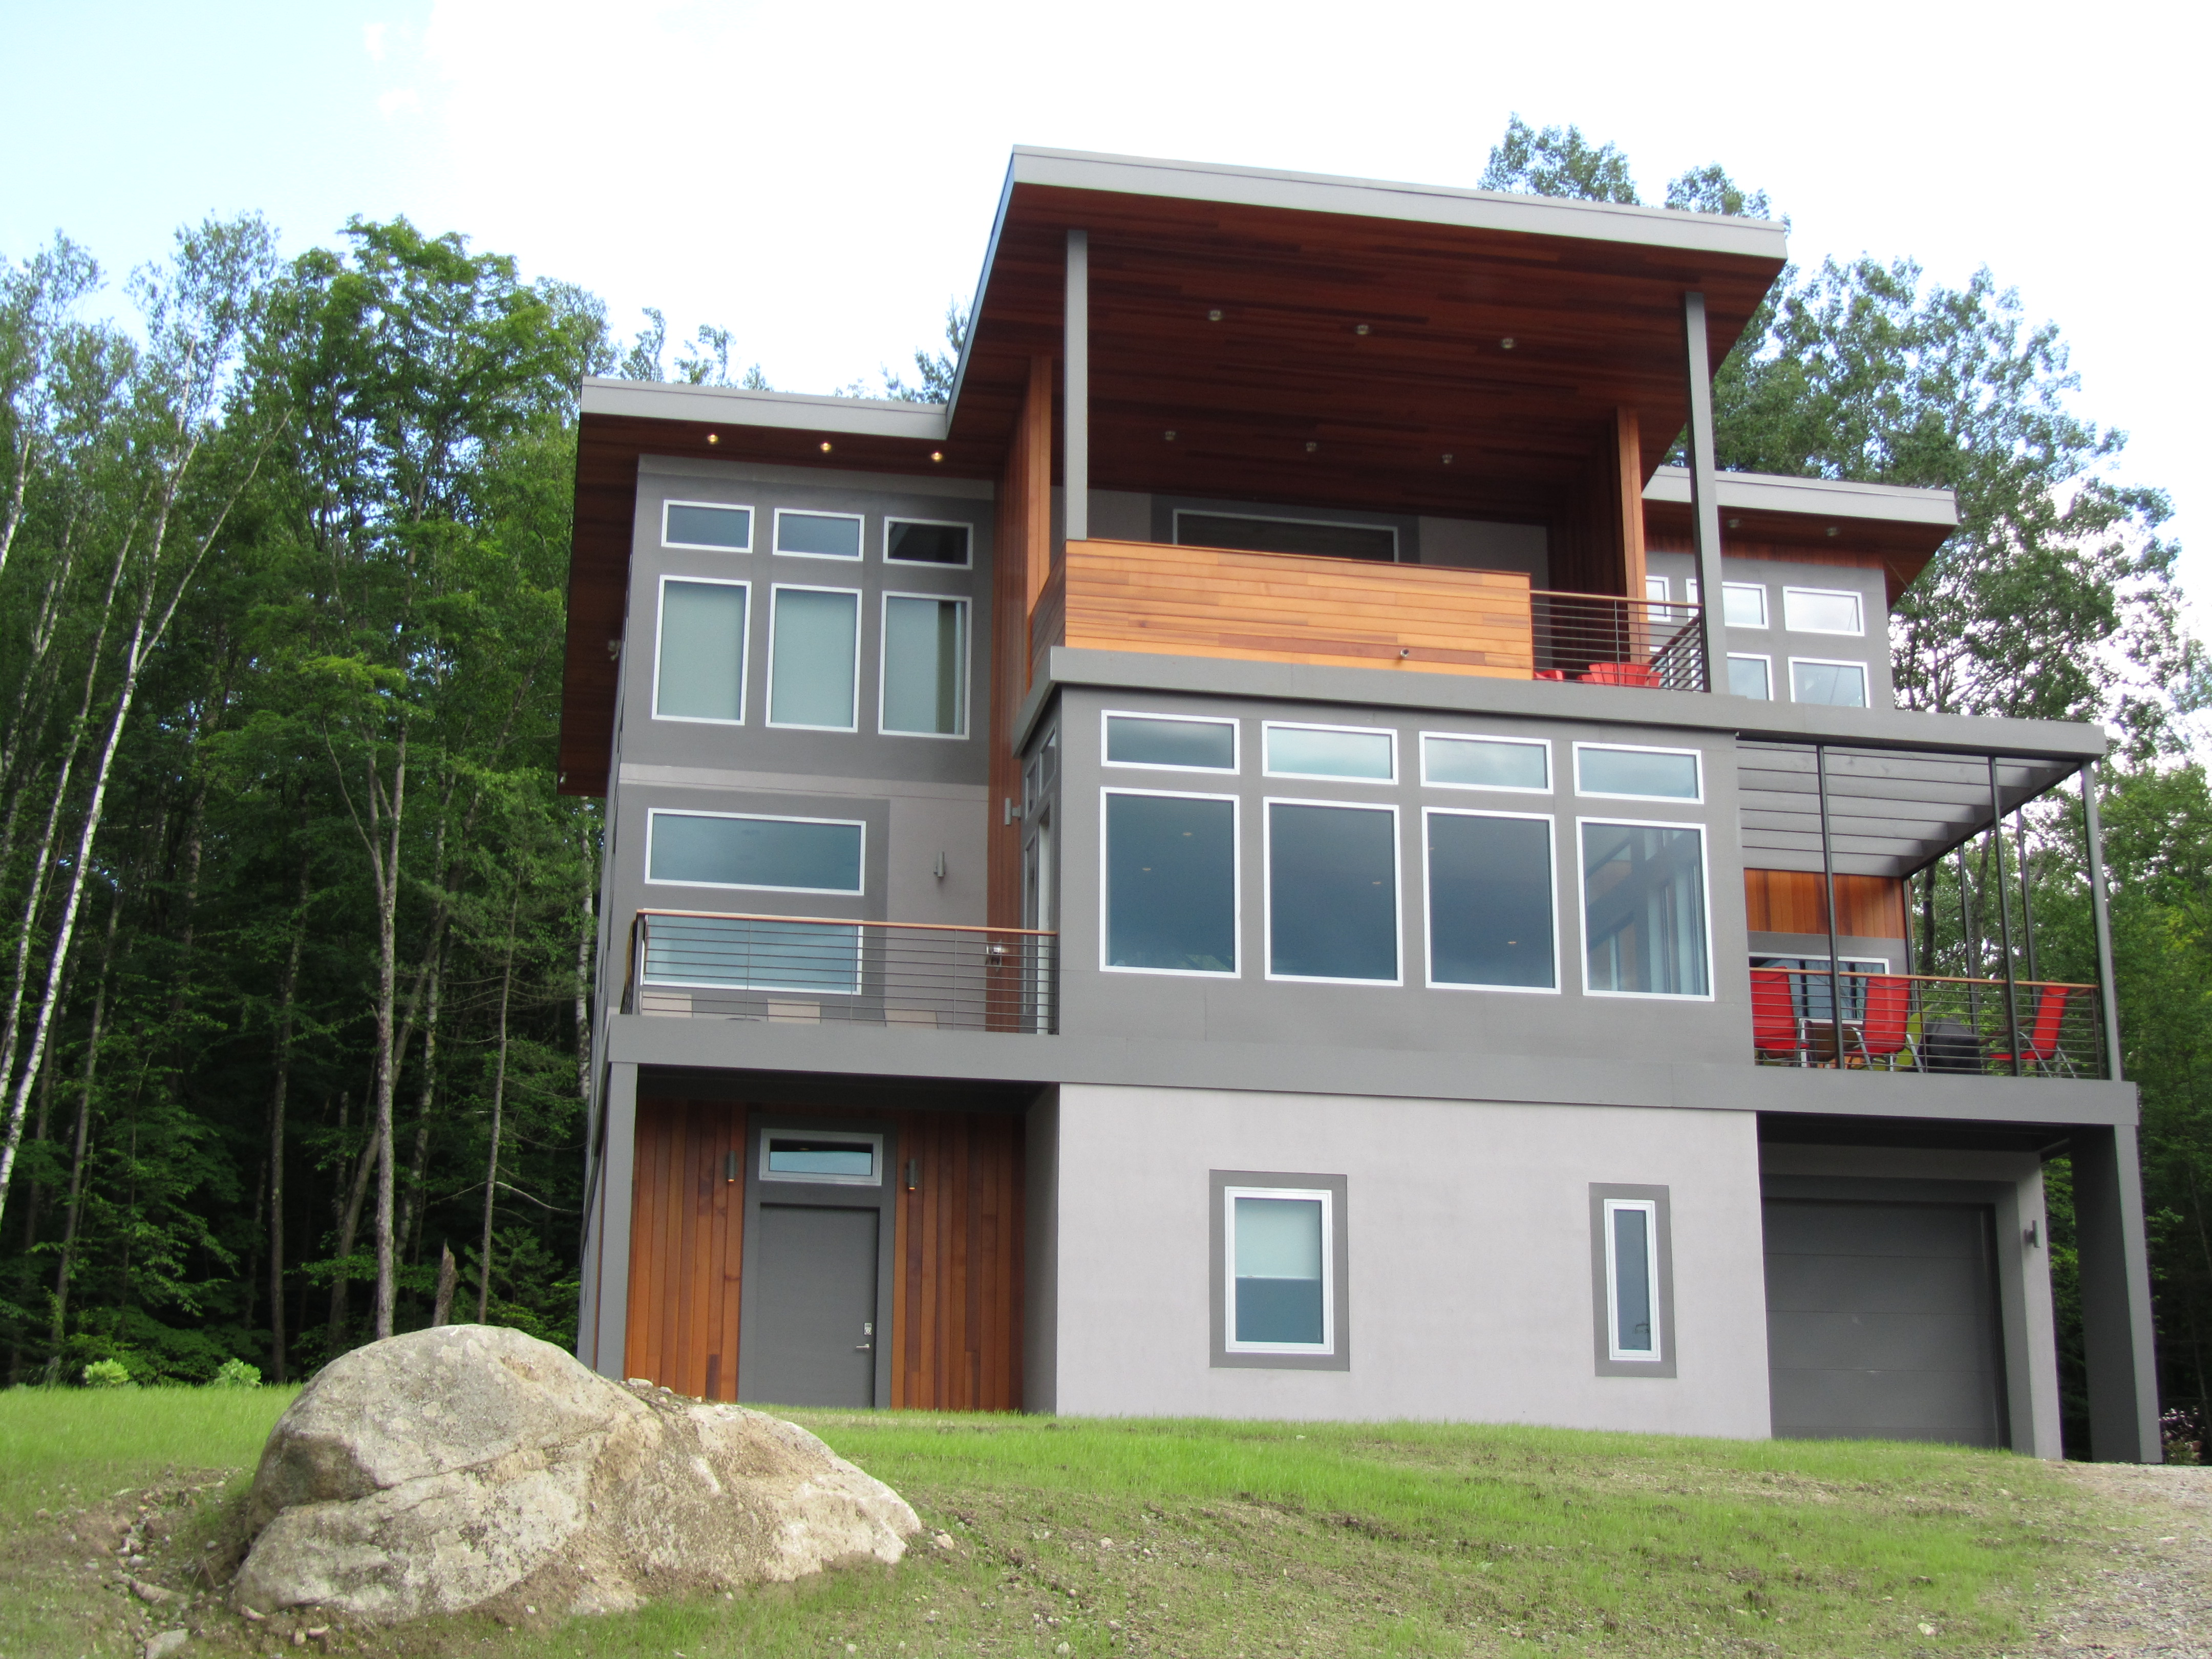 The house leisure house where the sleek design of a soho loft meets the adirondacks this modern 3 story home features expansive lake and mountain views